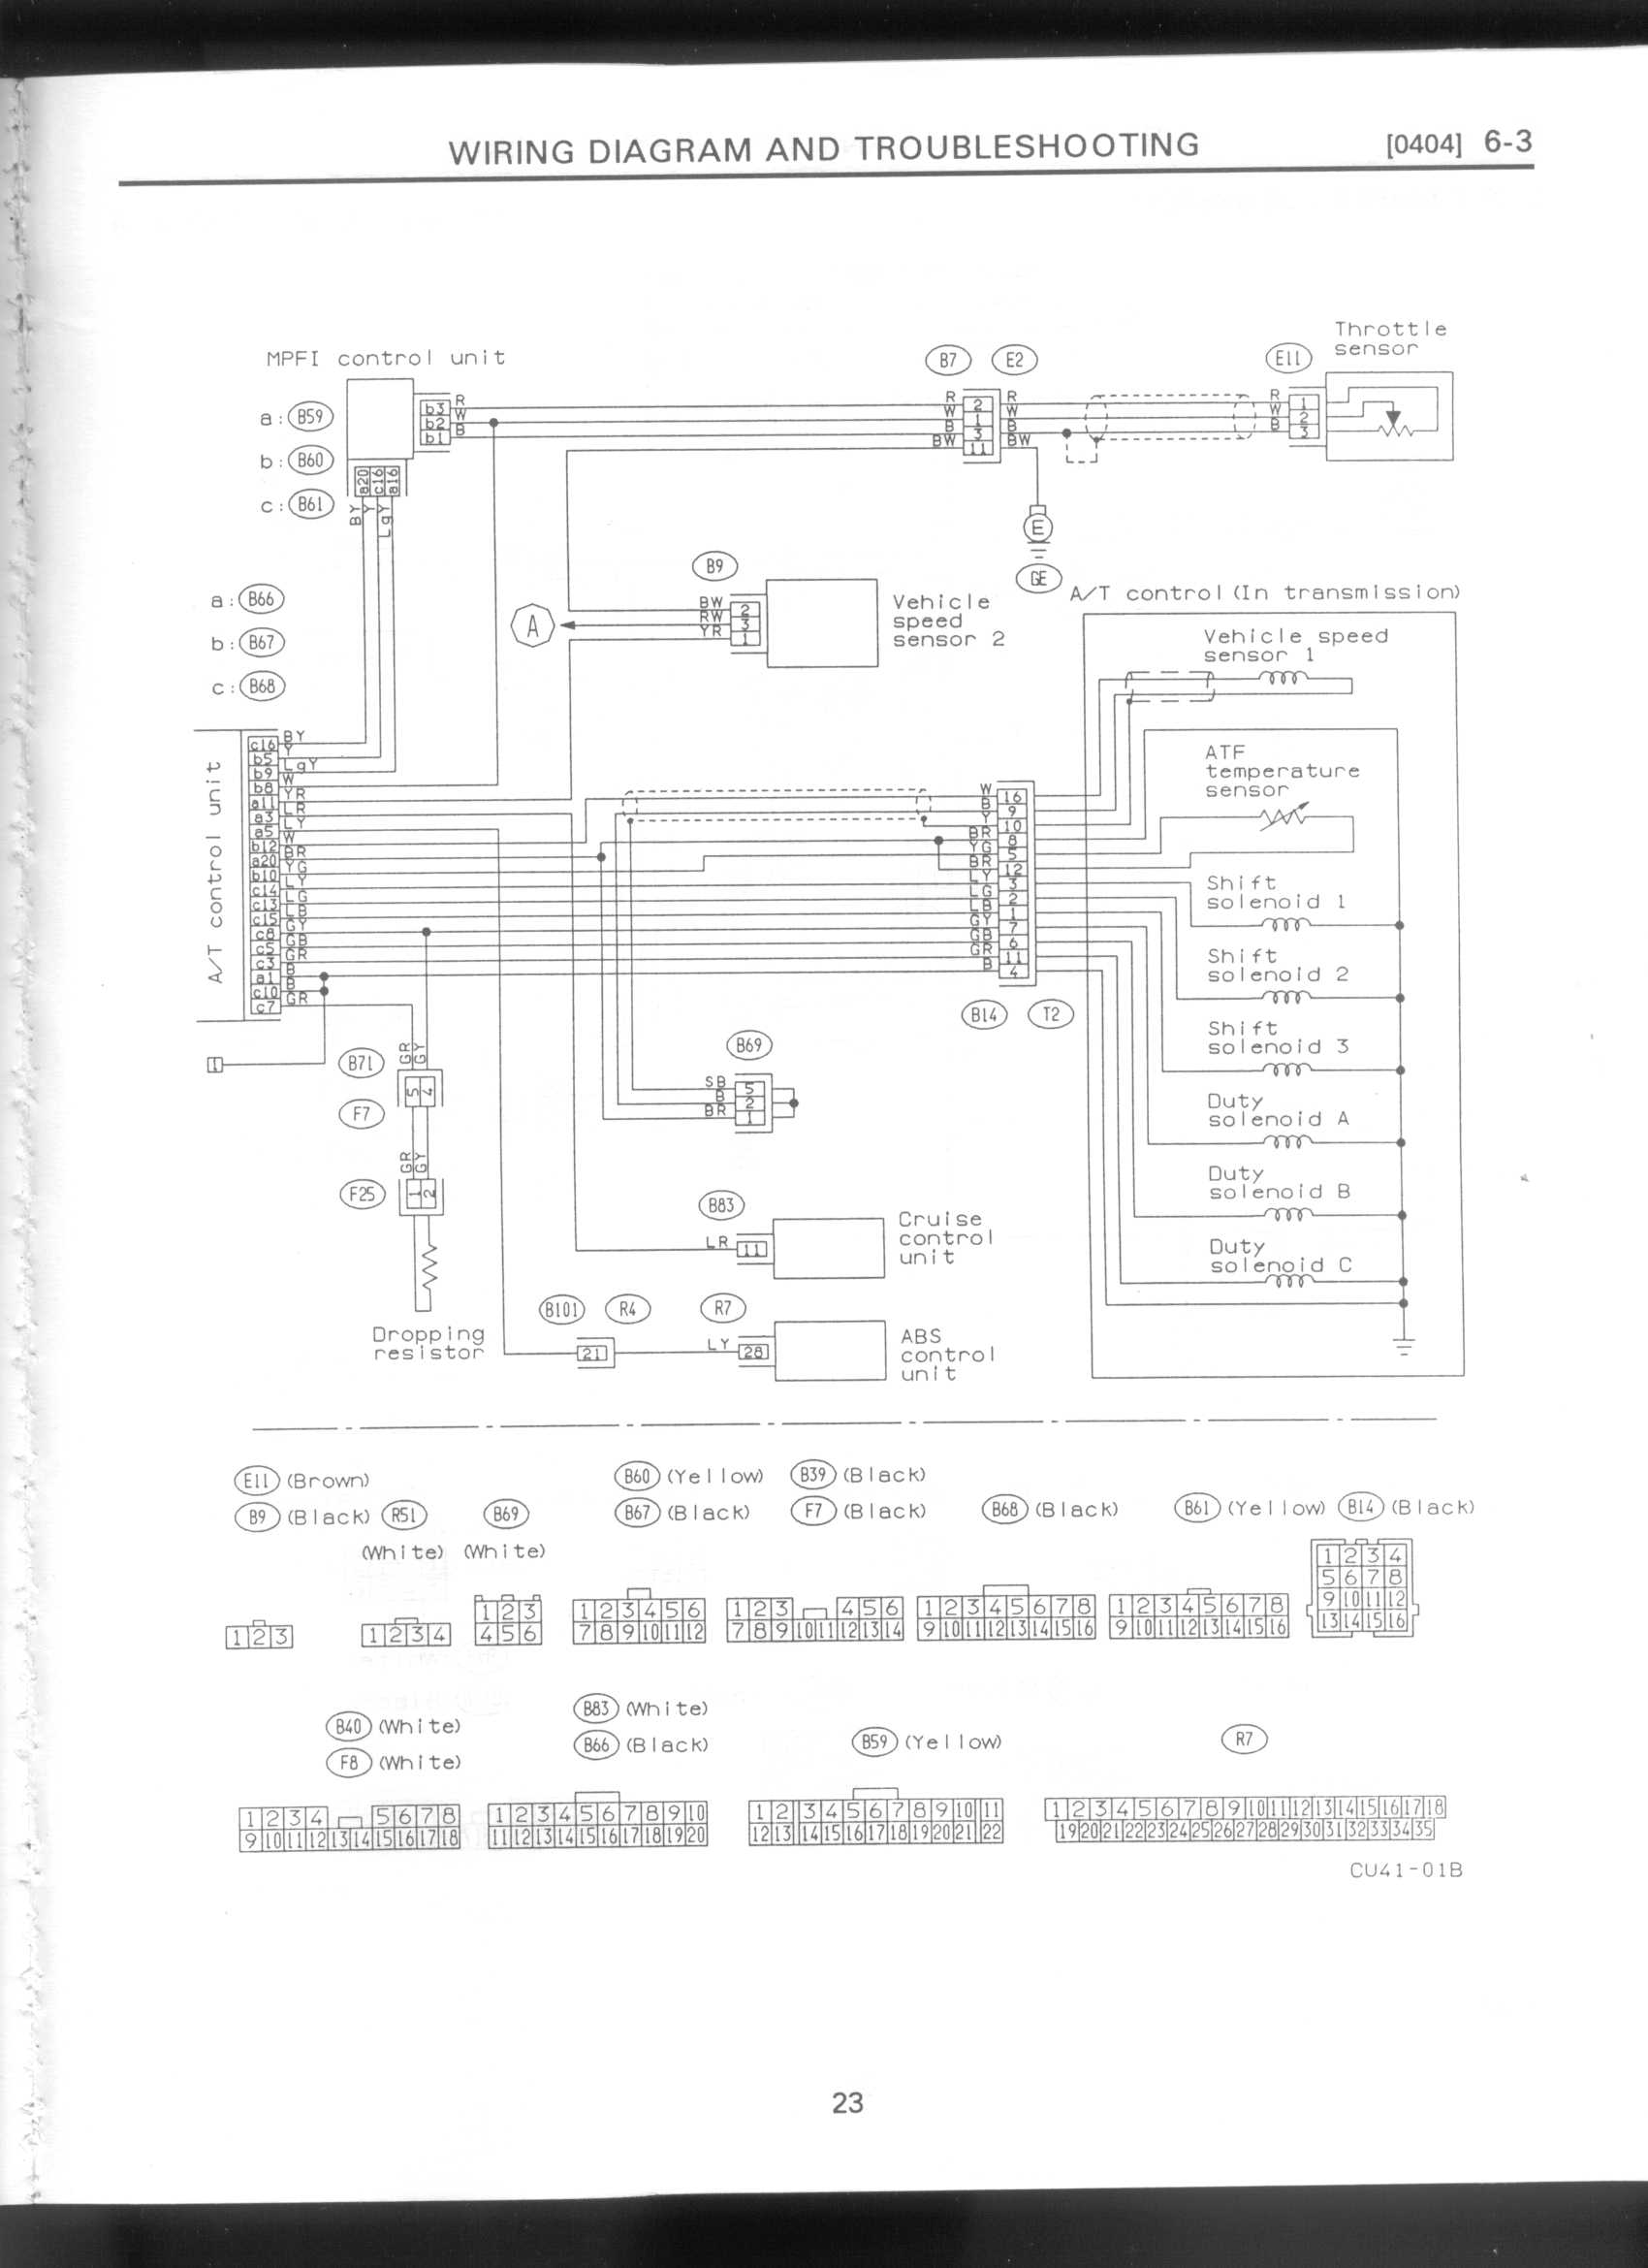 1998 subaru impreza radio wiring diagram 2001 chevy blazer engine fuse box diagrams instruction